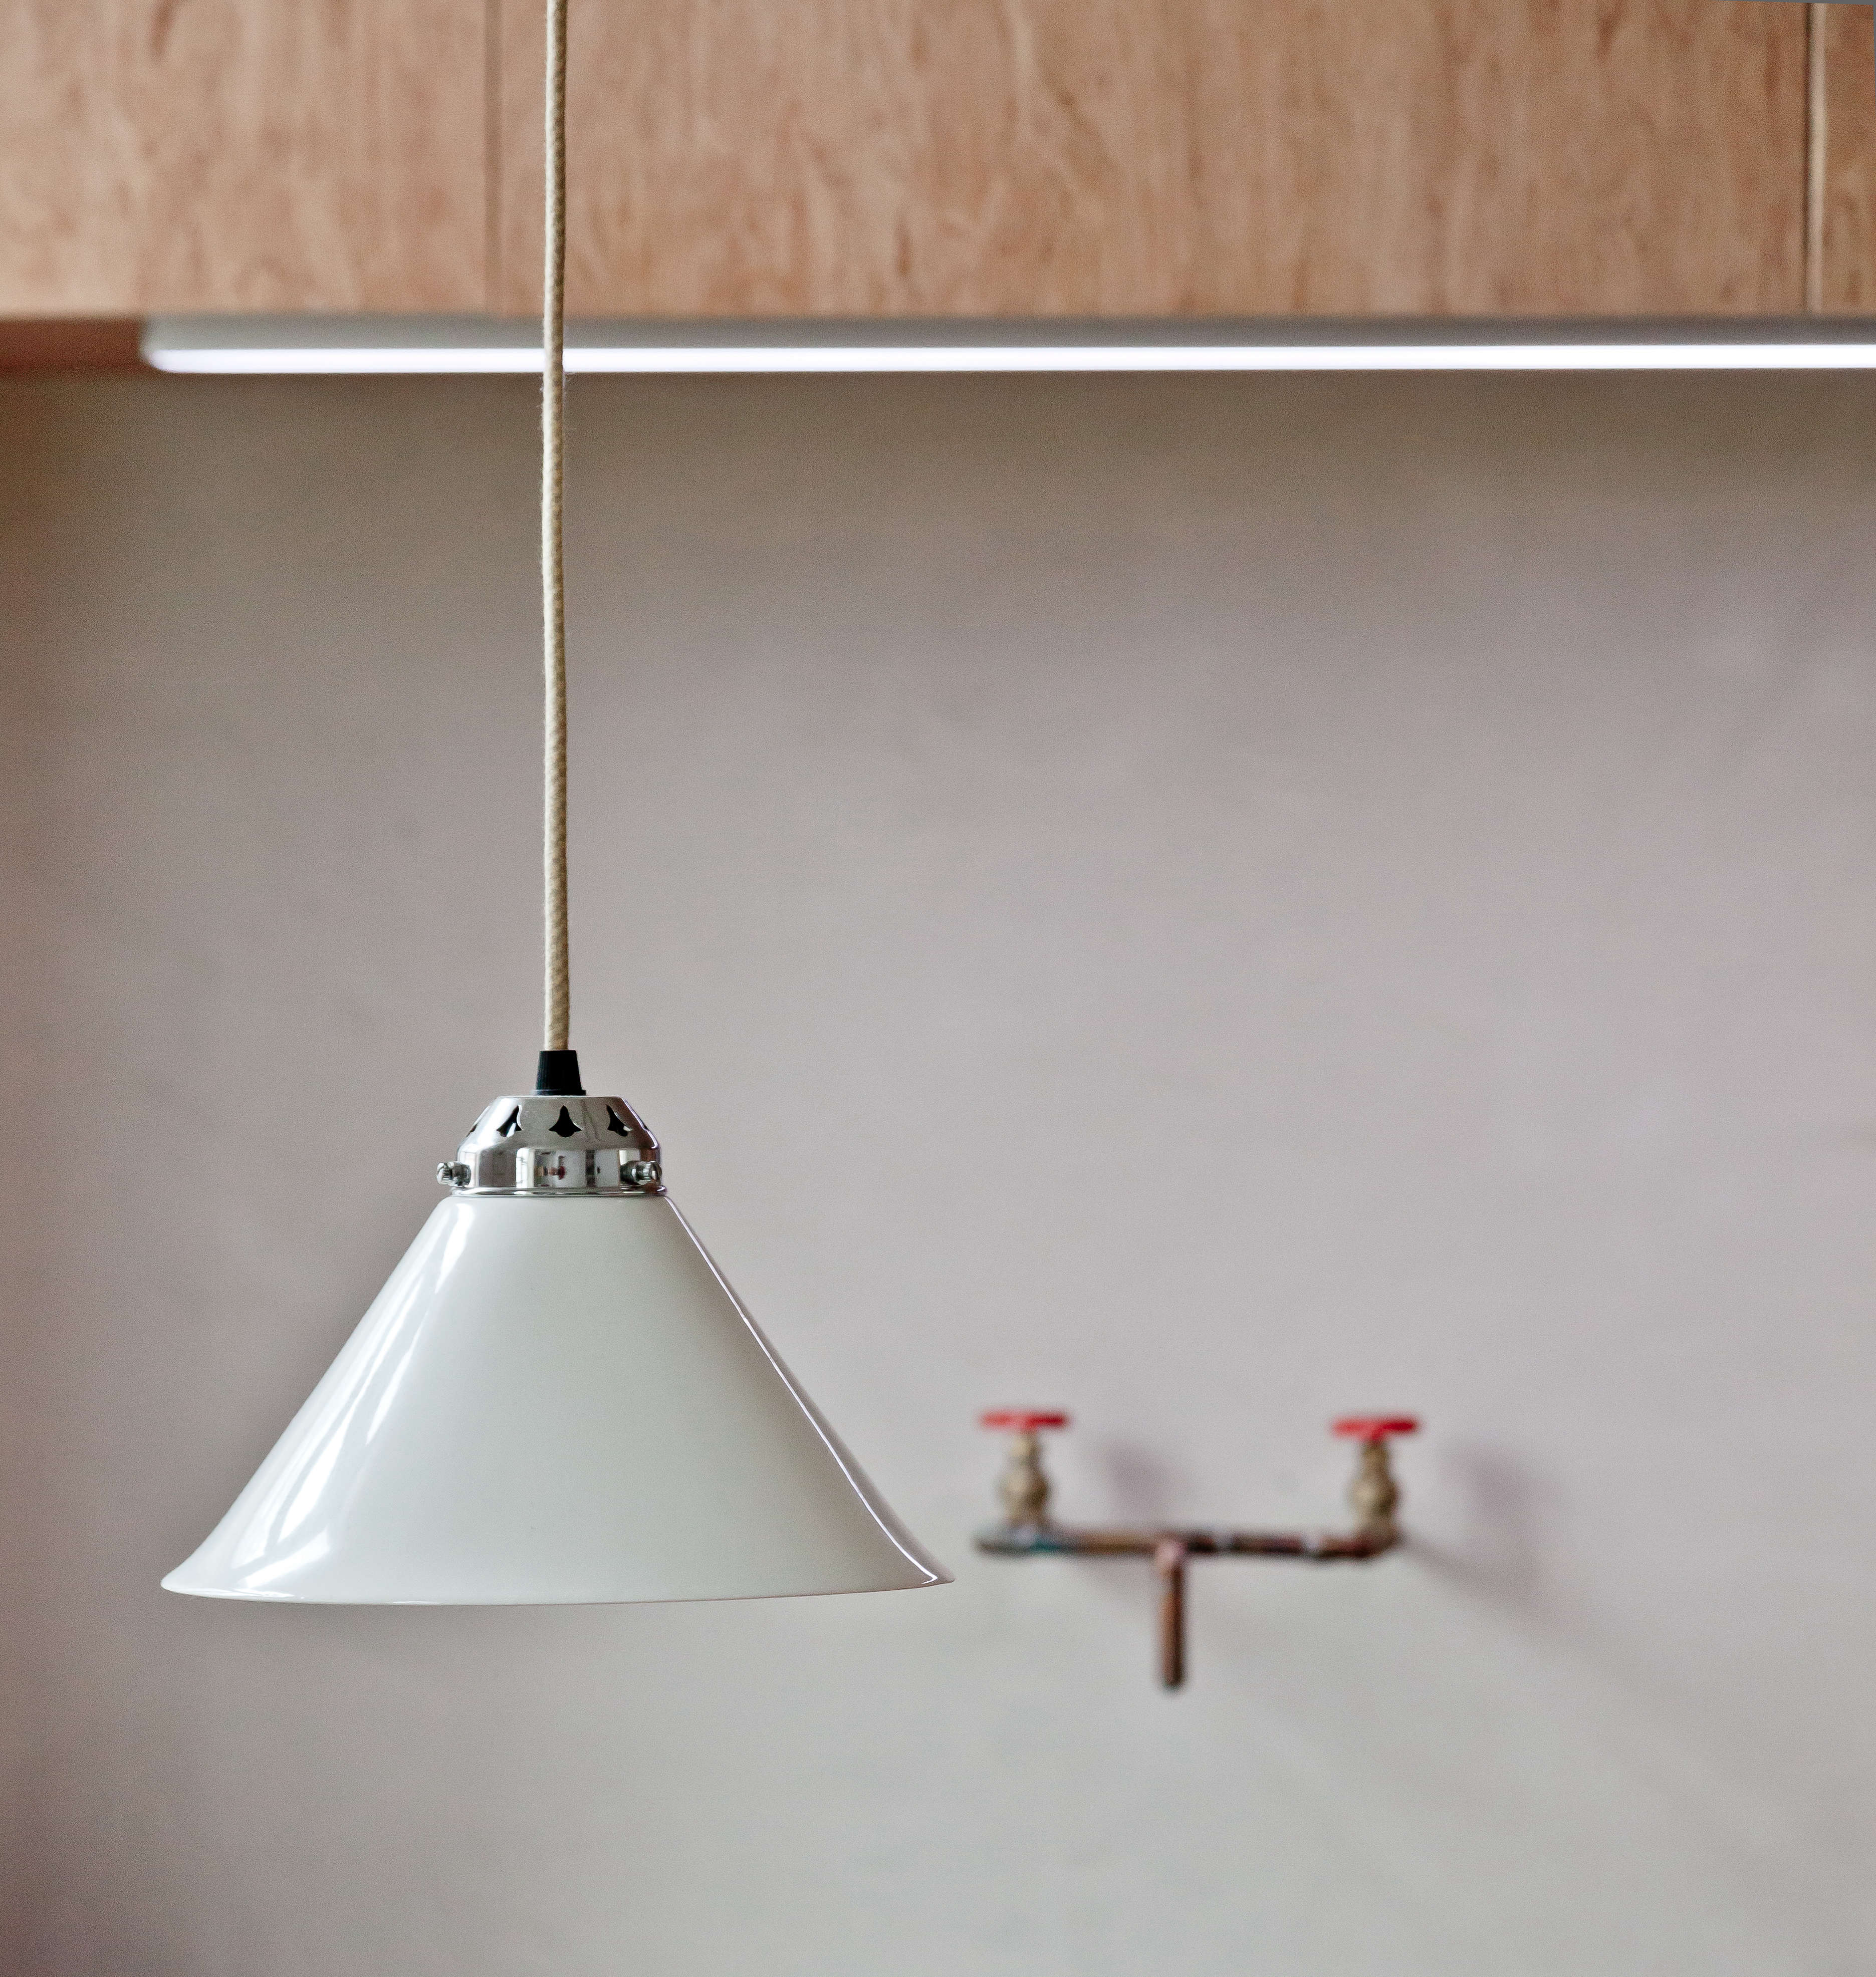 original btc cobb bone china pulley light and kitchen faucet made from brass pi 13